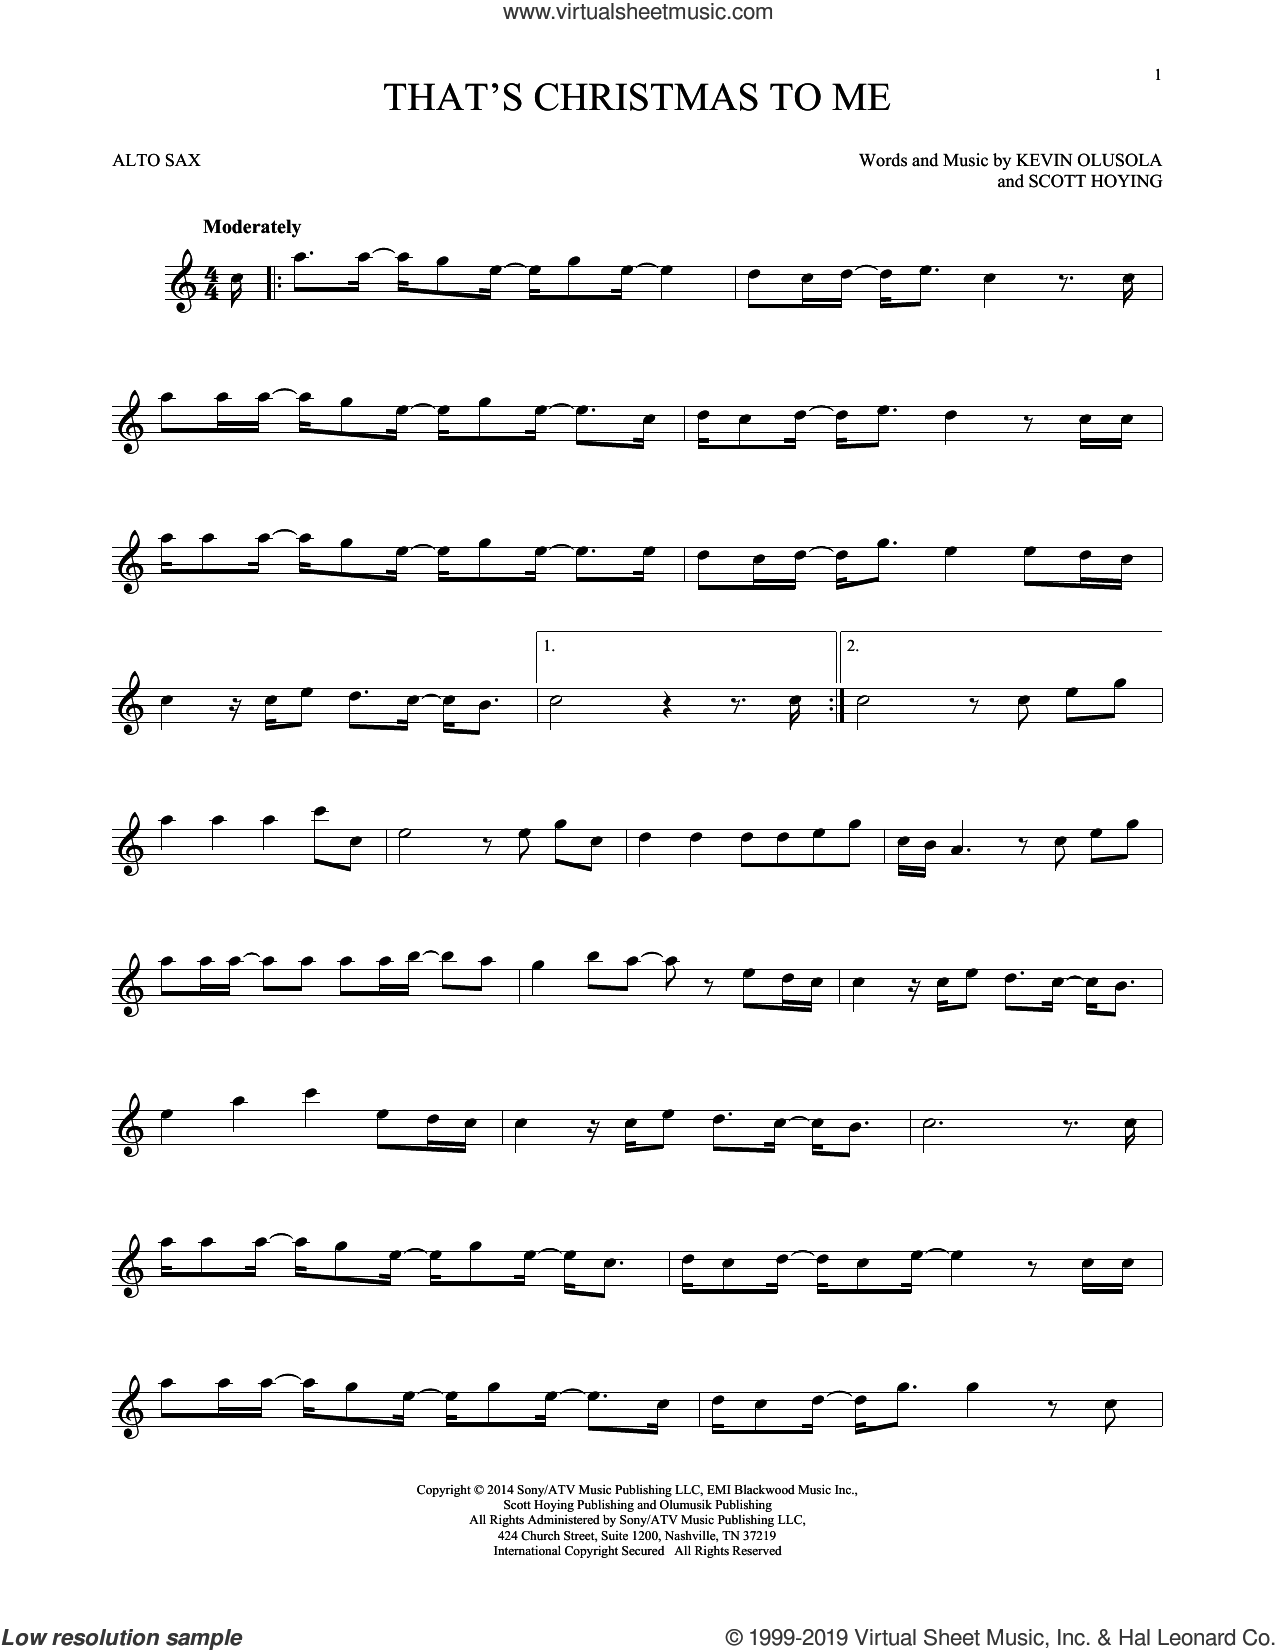 That's Christmas To Me sheet music for alto saxophone solo by Pentatonix, Kevin Olusola and Scott Hoying, intermediate skill level